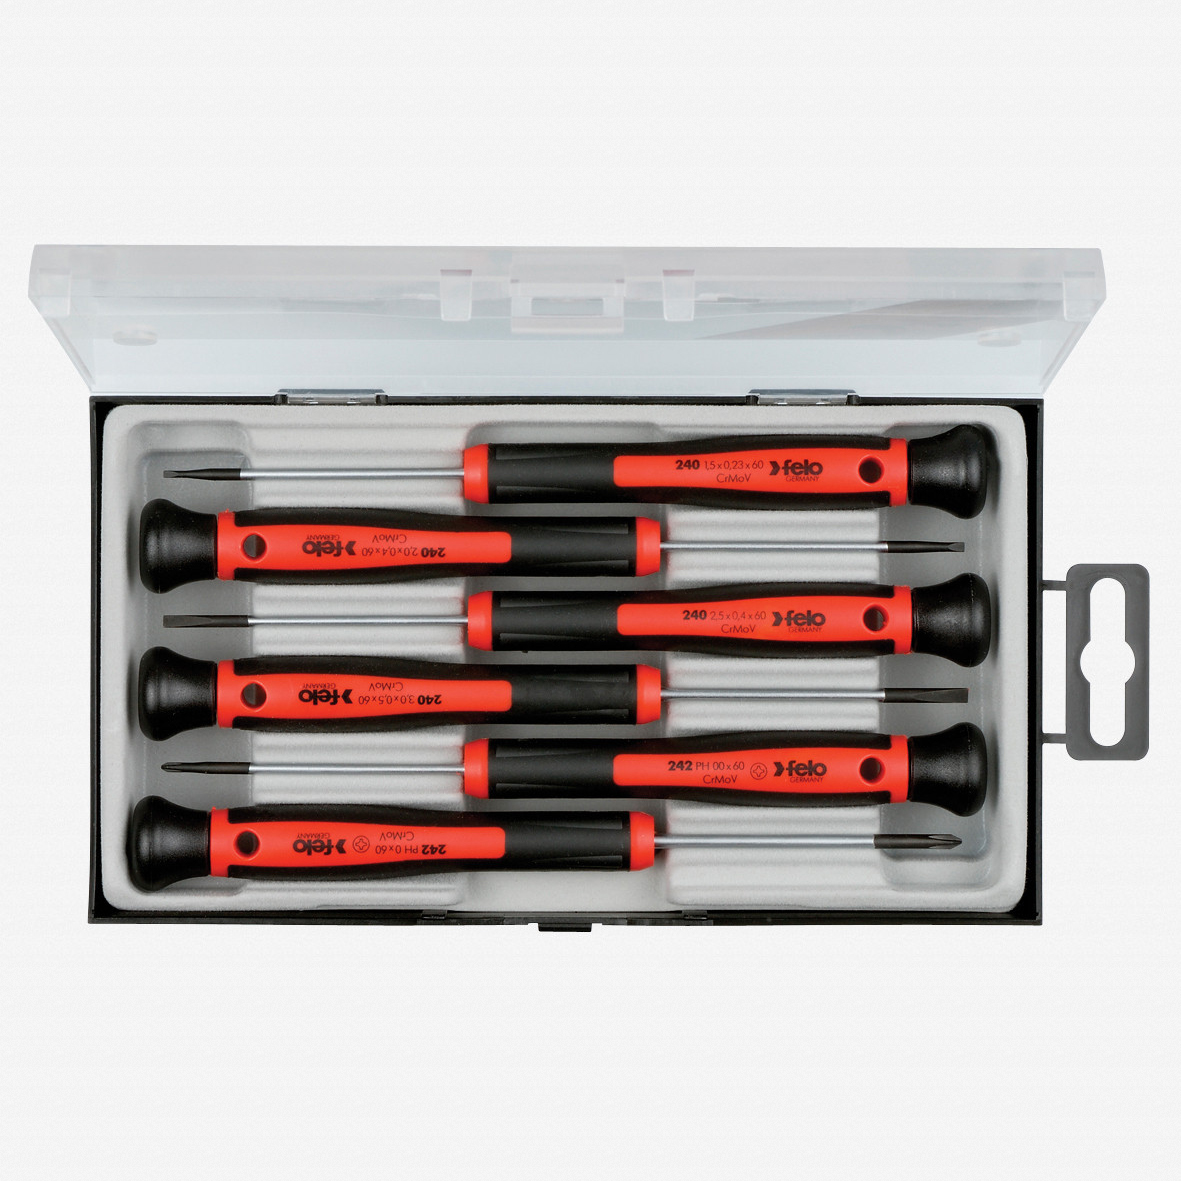 Felo 31844 6 Piece Slotted & Phillips Precision Screwdriver Set - KC Tool